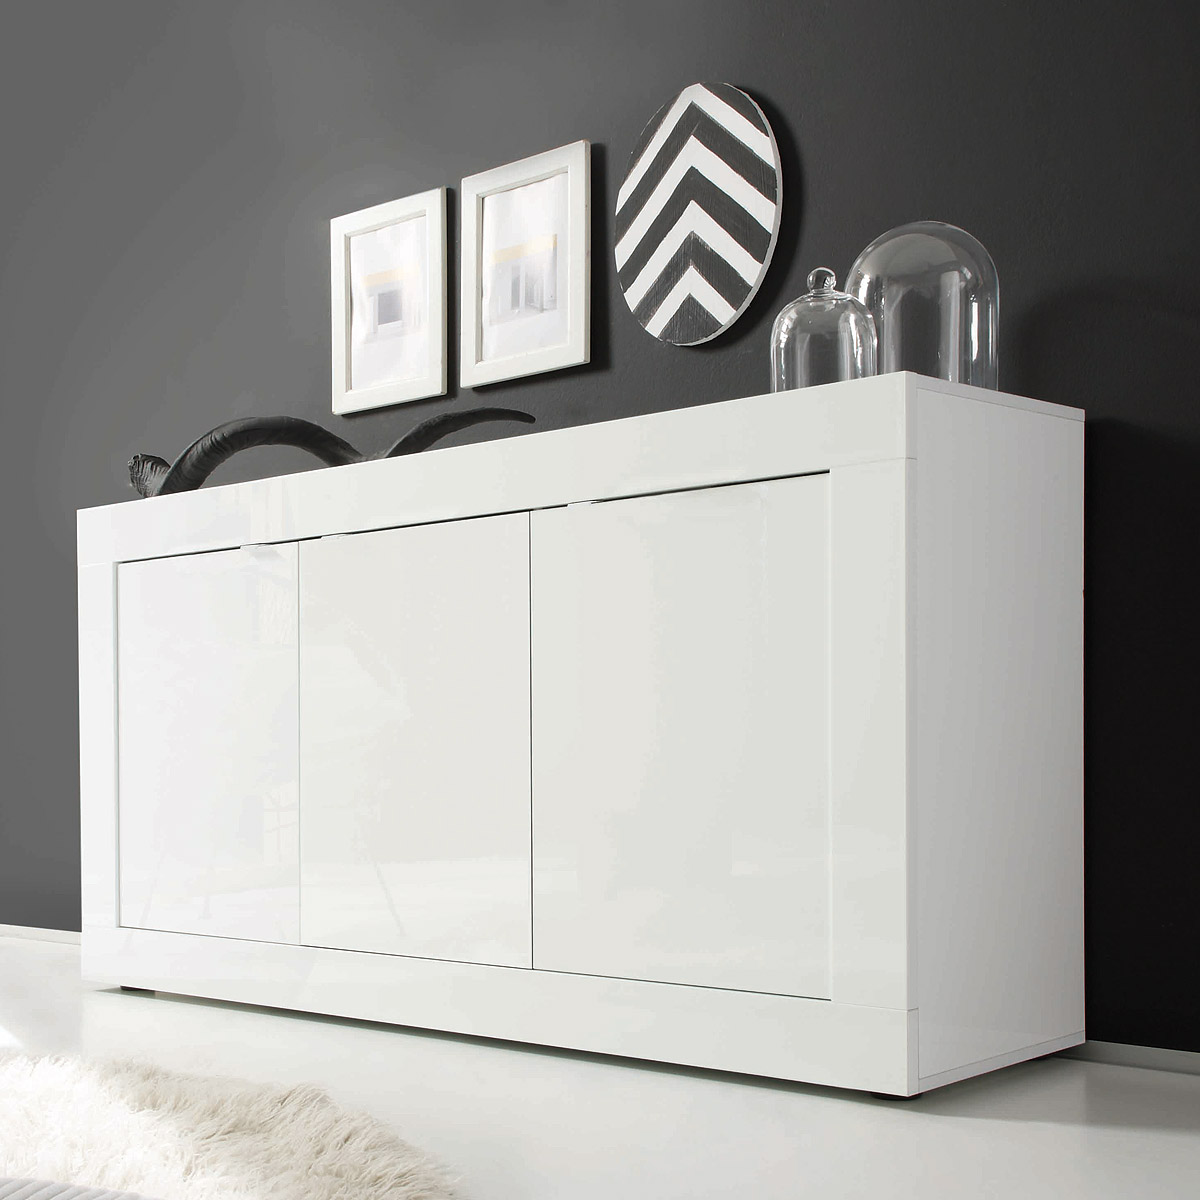 sideboard basic wohnzimmer kommode wei lackiert 3 t rig. Black Bedroom Furniture Sets. Home Design Ideas